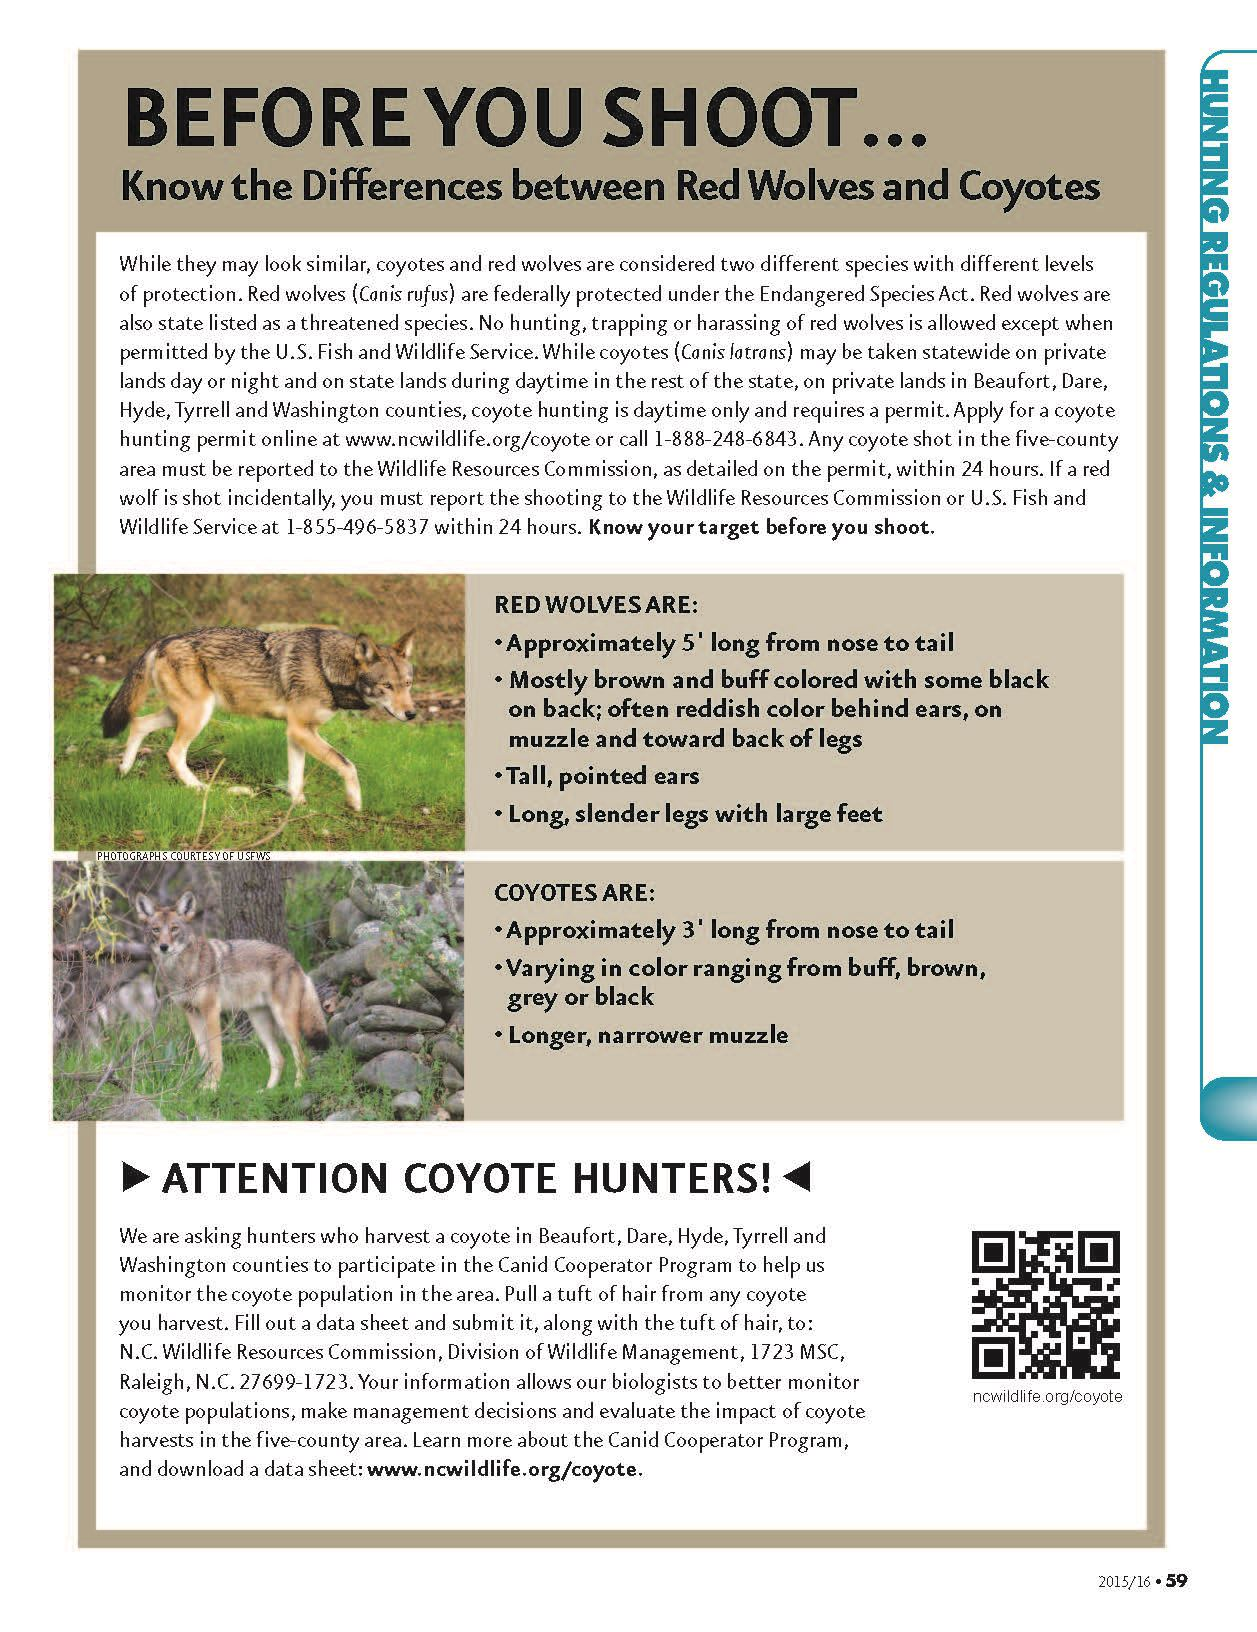 Coyote hunting information_Page_2